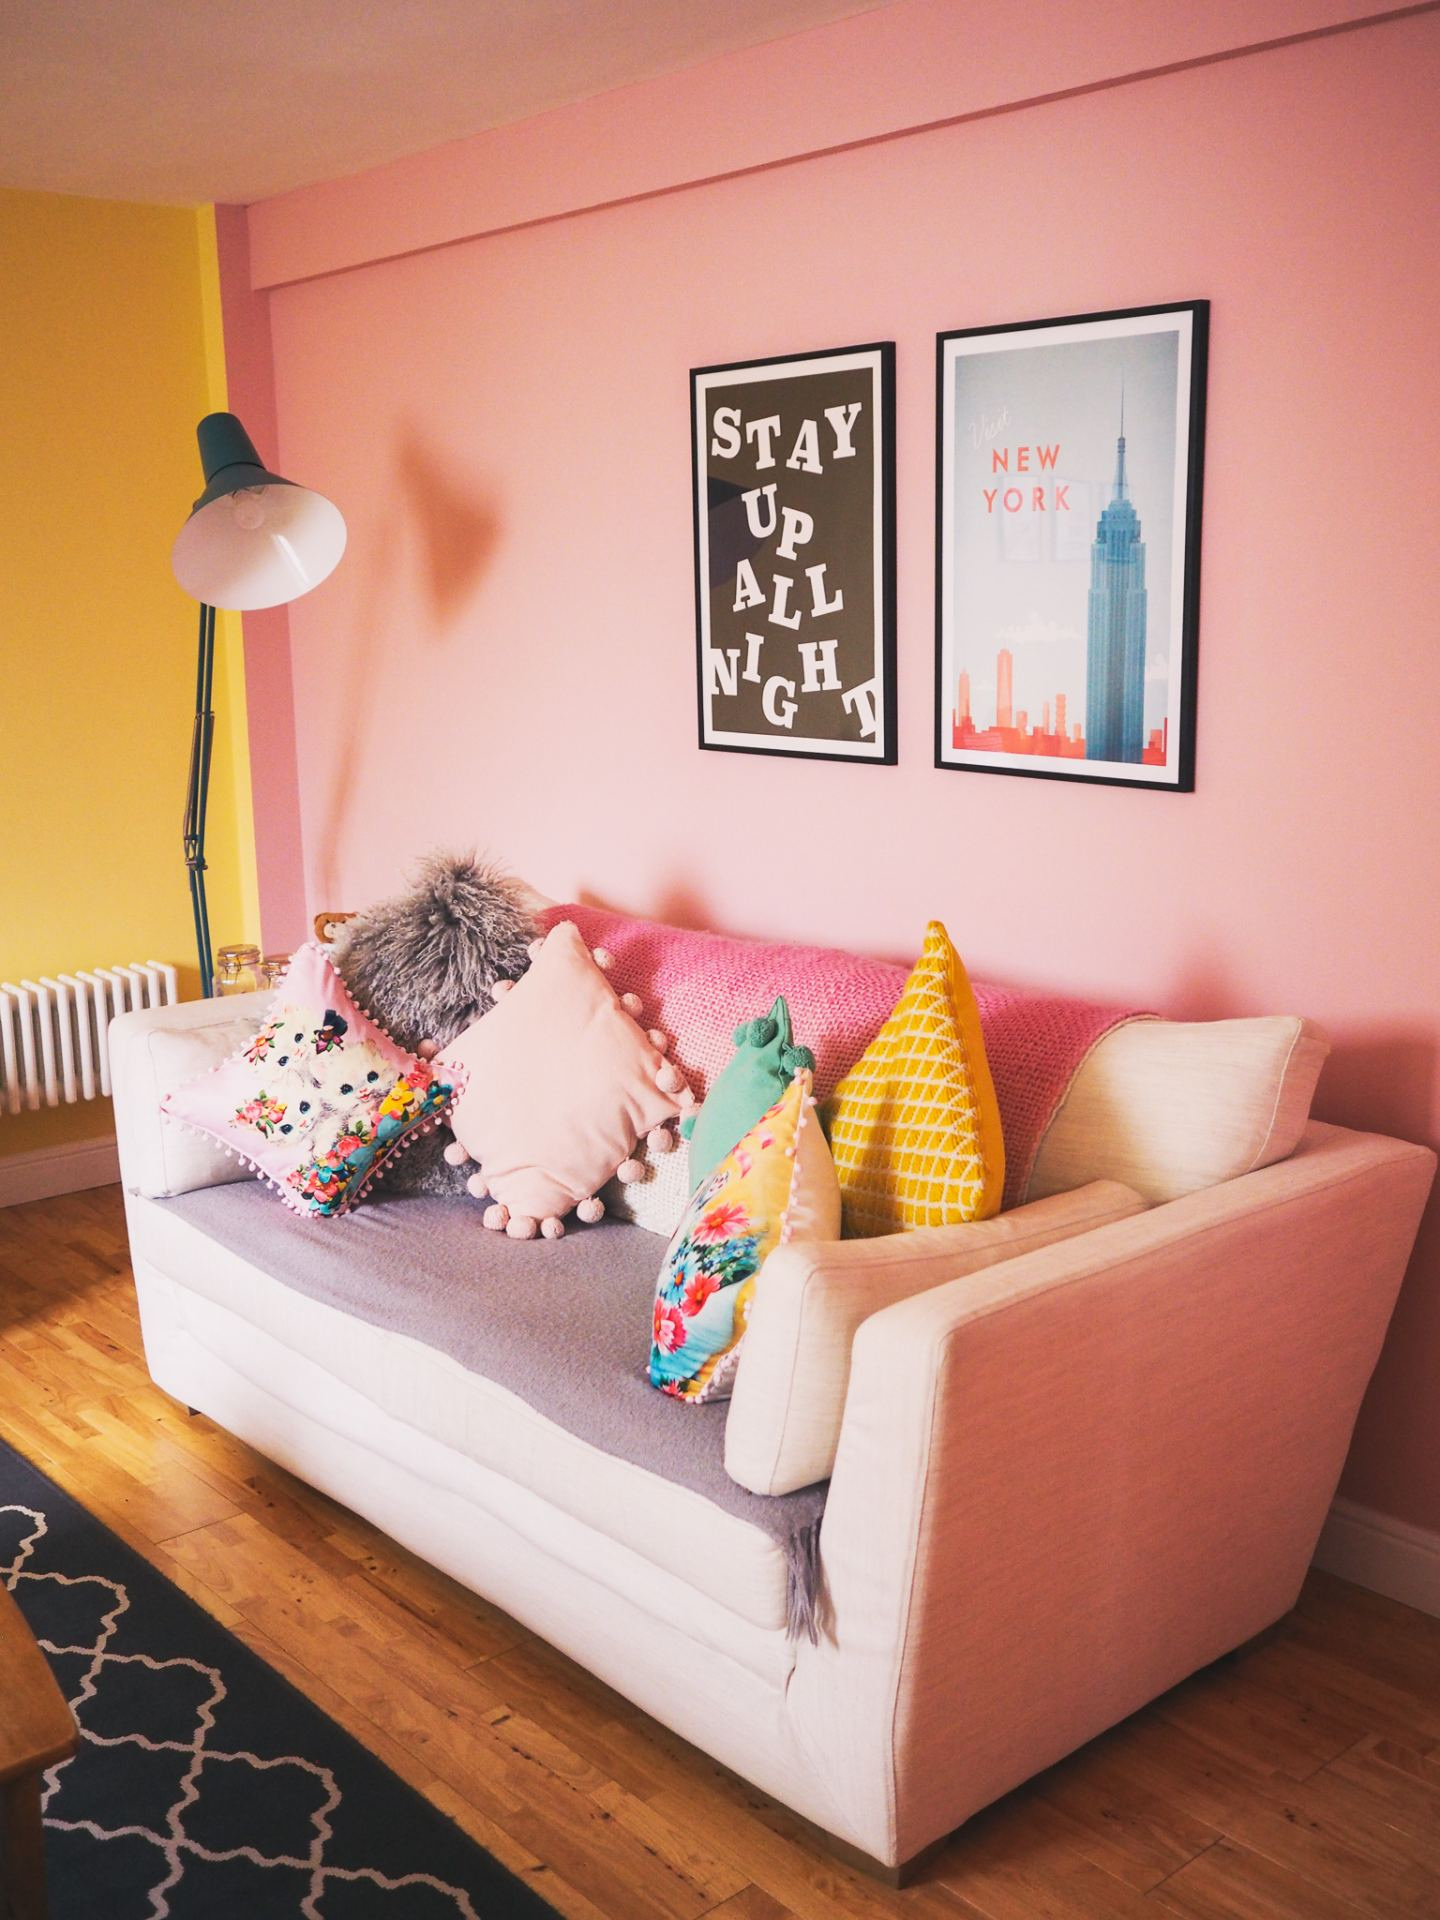 desenio prints stay up all night new york travel print colourful haul margate colourful home